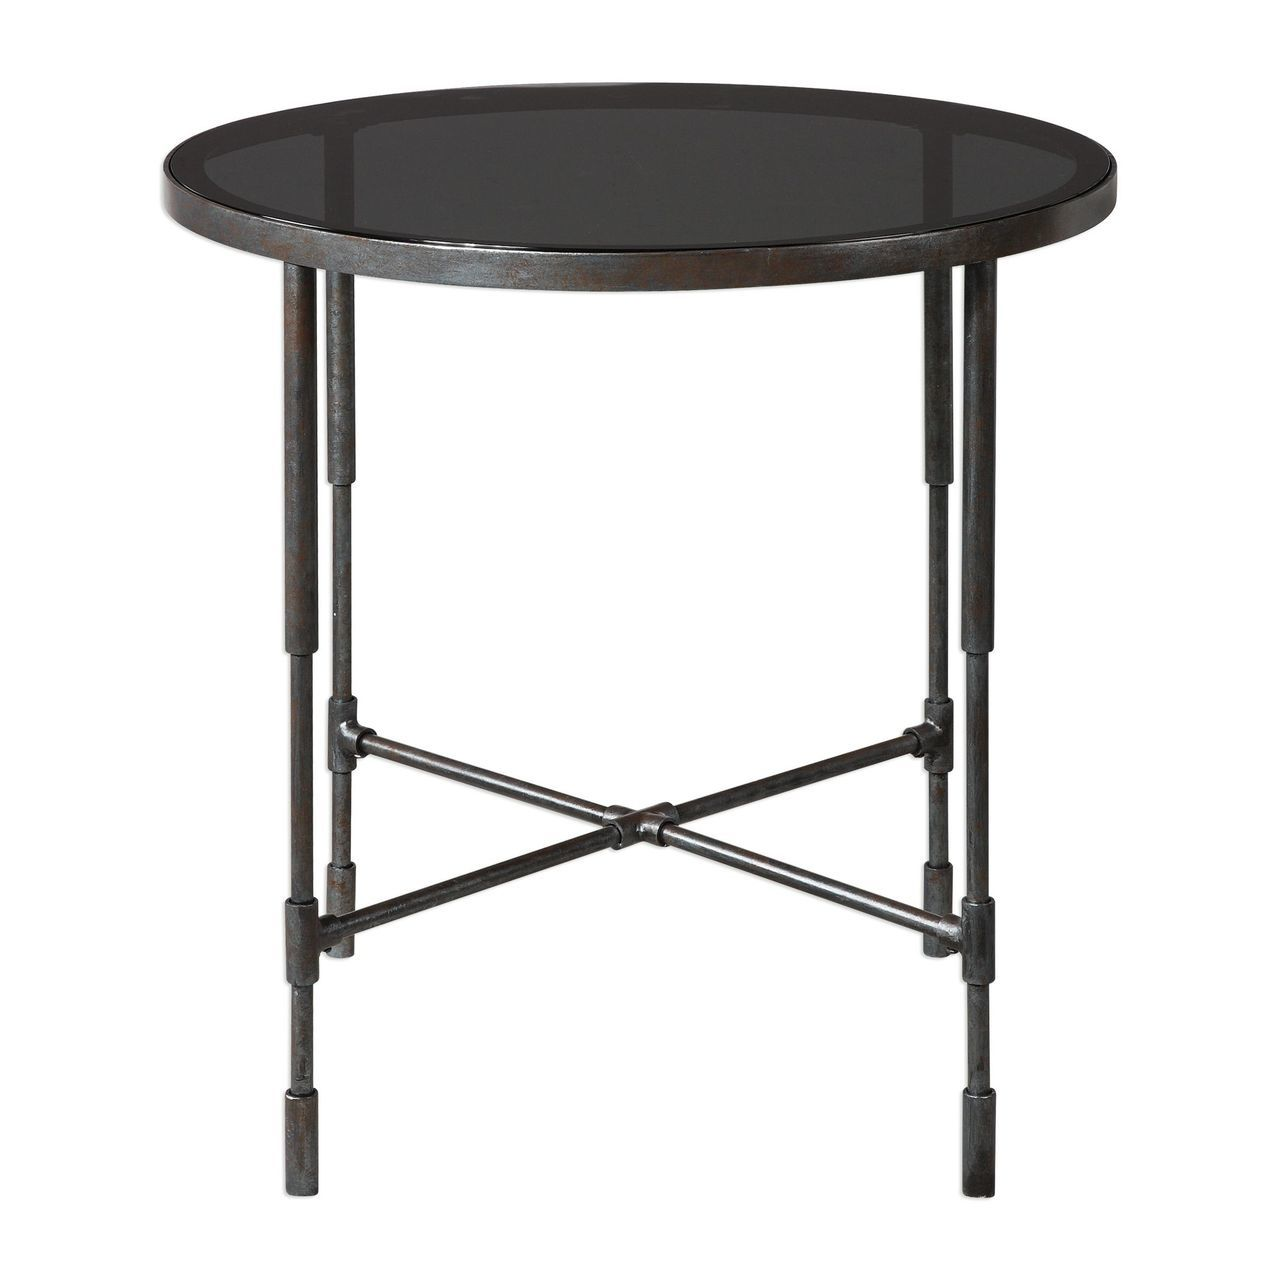 industrial mini rustic metal accent table round pipe fitting retro swanky home small wooden coffee with drawers diy legs wood kmart outdoor furniture low cabinet uttermost washer